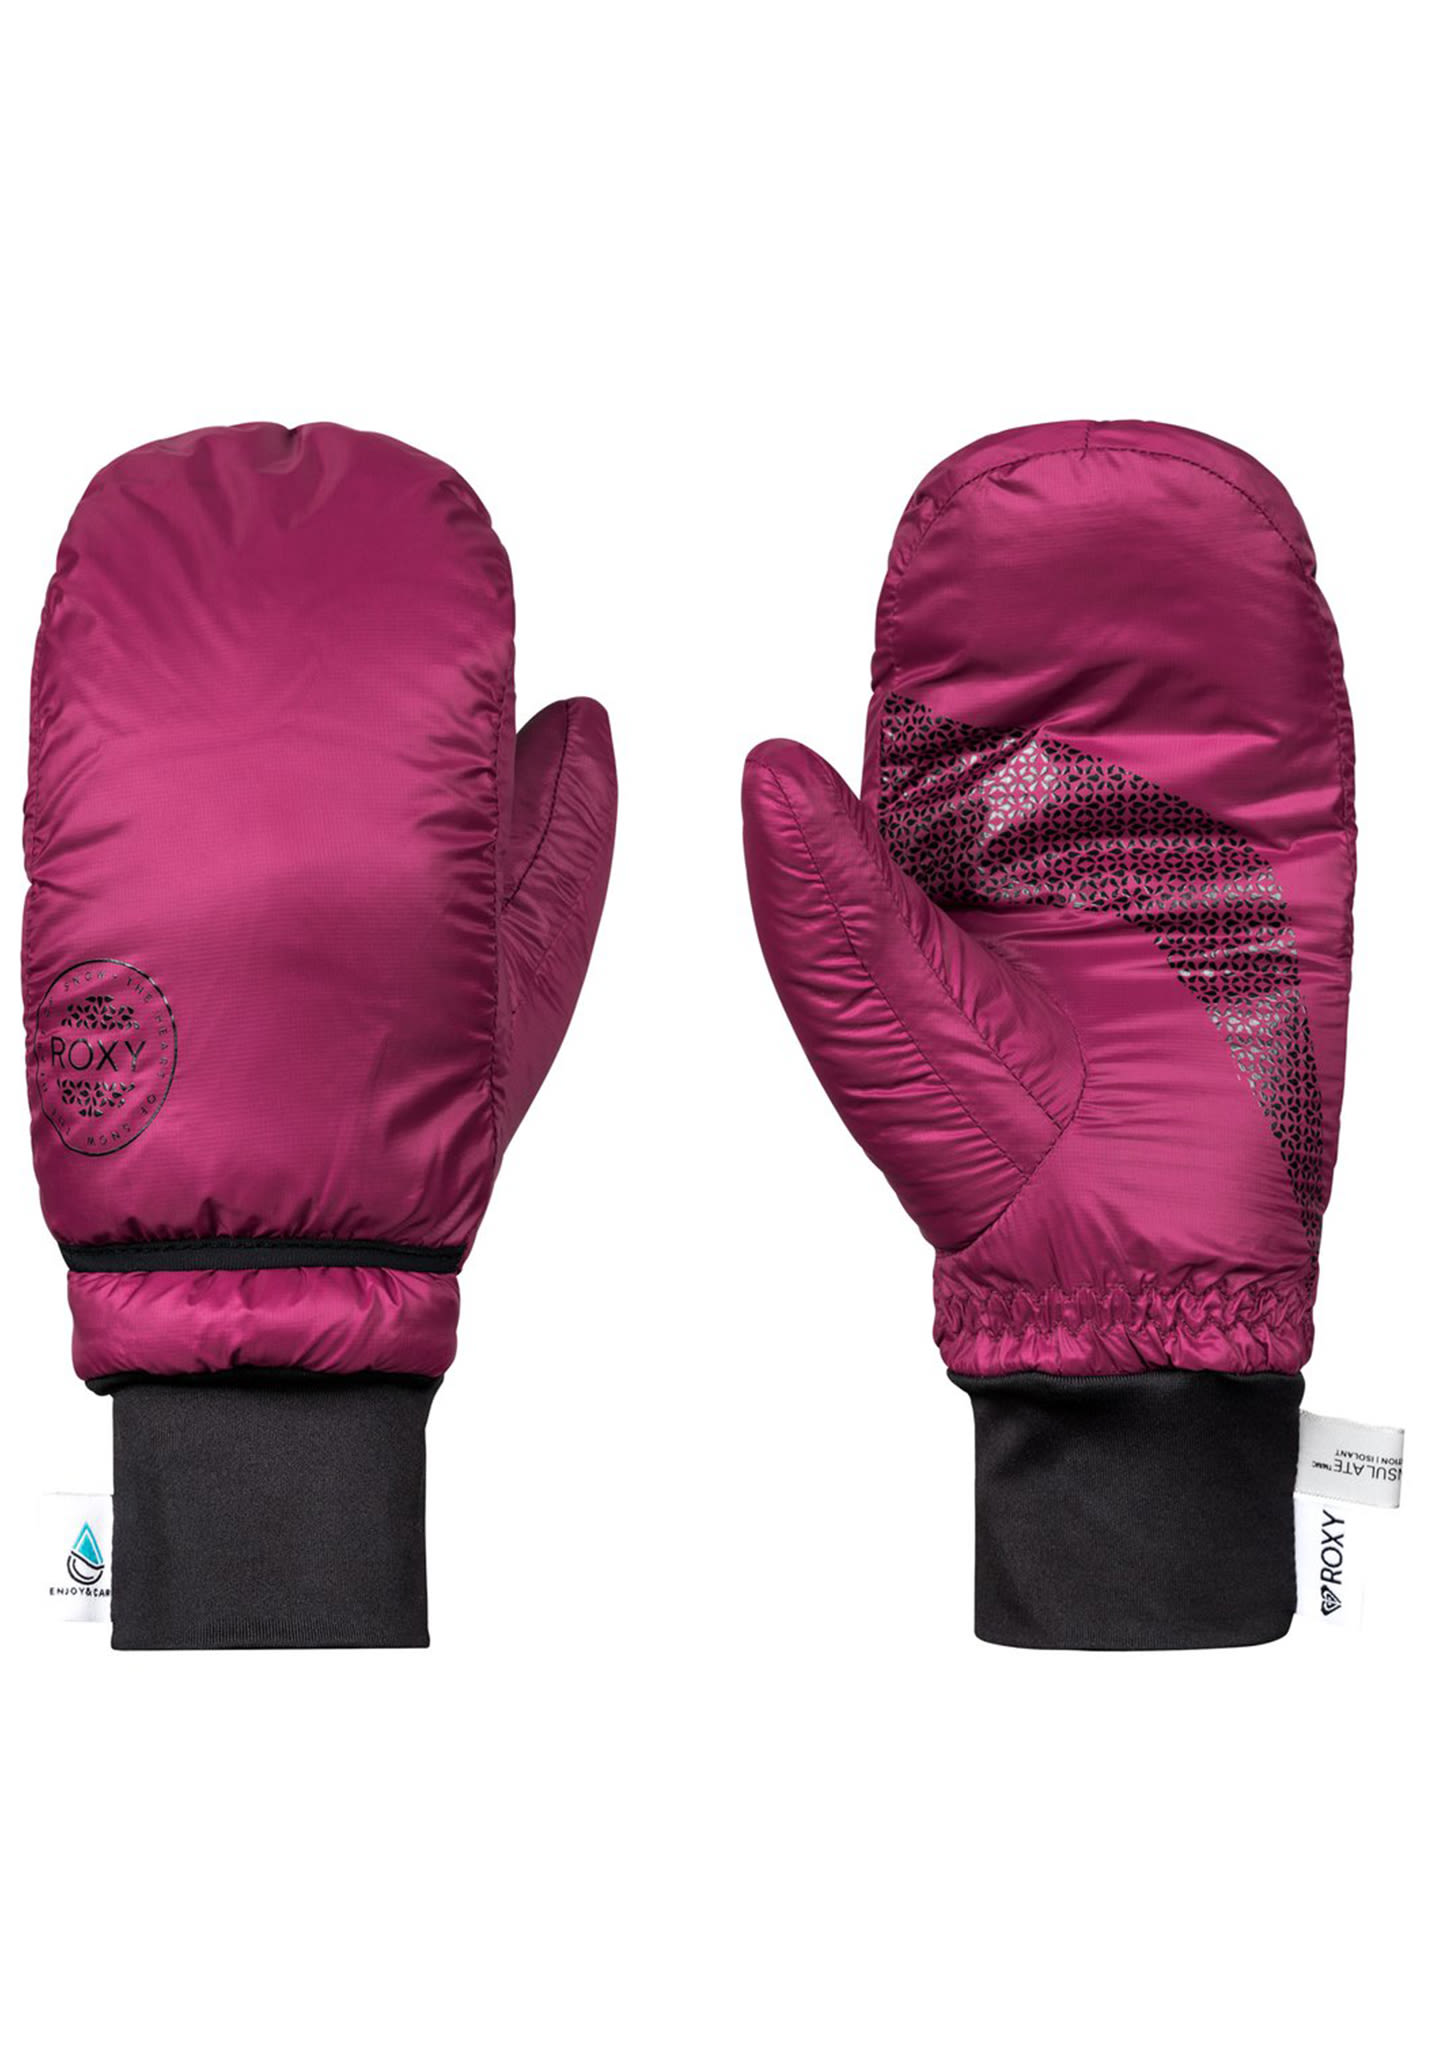 2c1c3ee74ccb05 Roxy Packable - Snowboard Handschuhe für Damen - Rot - Planet Sports